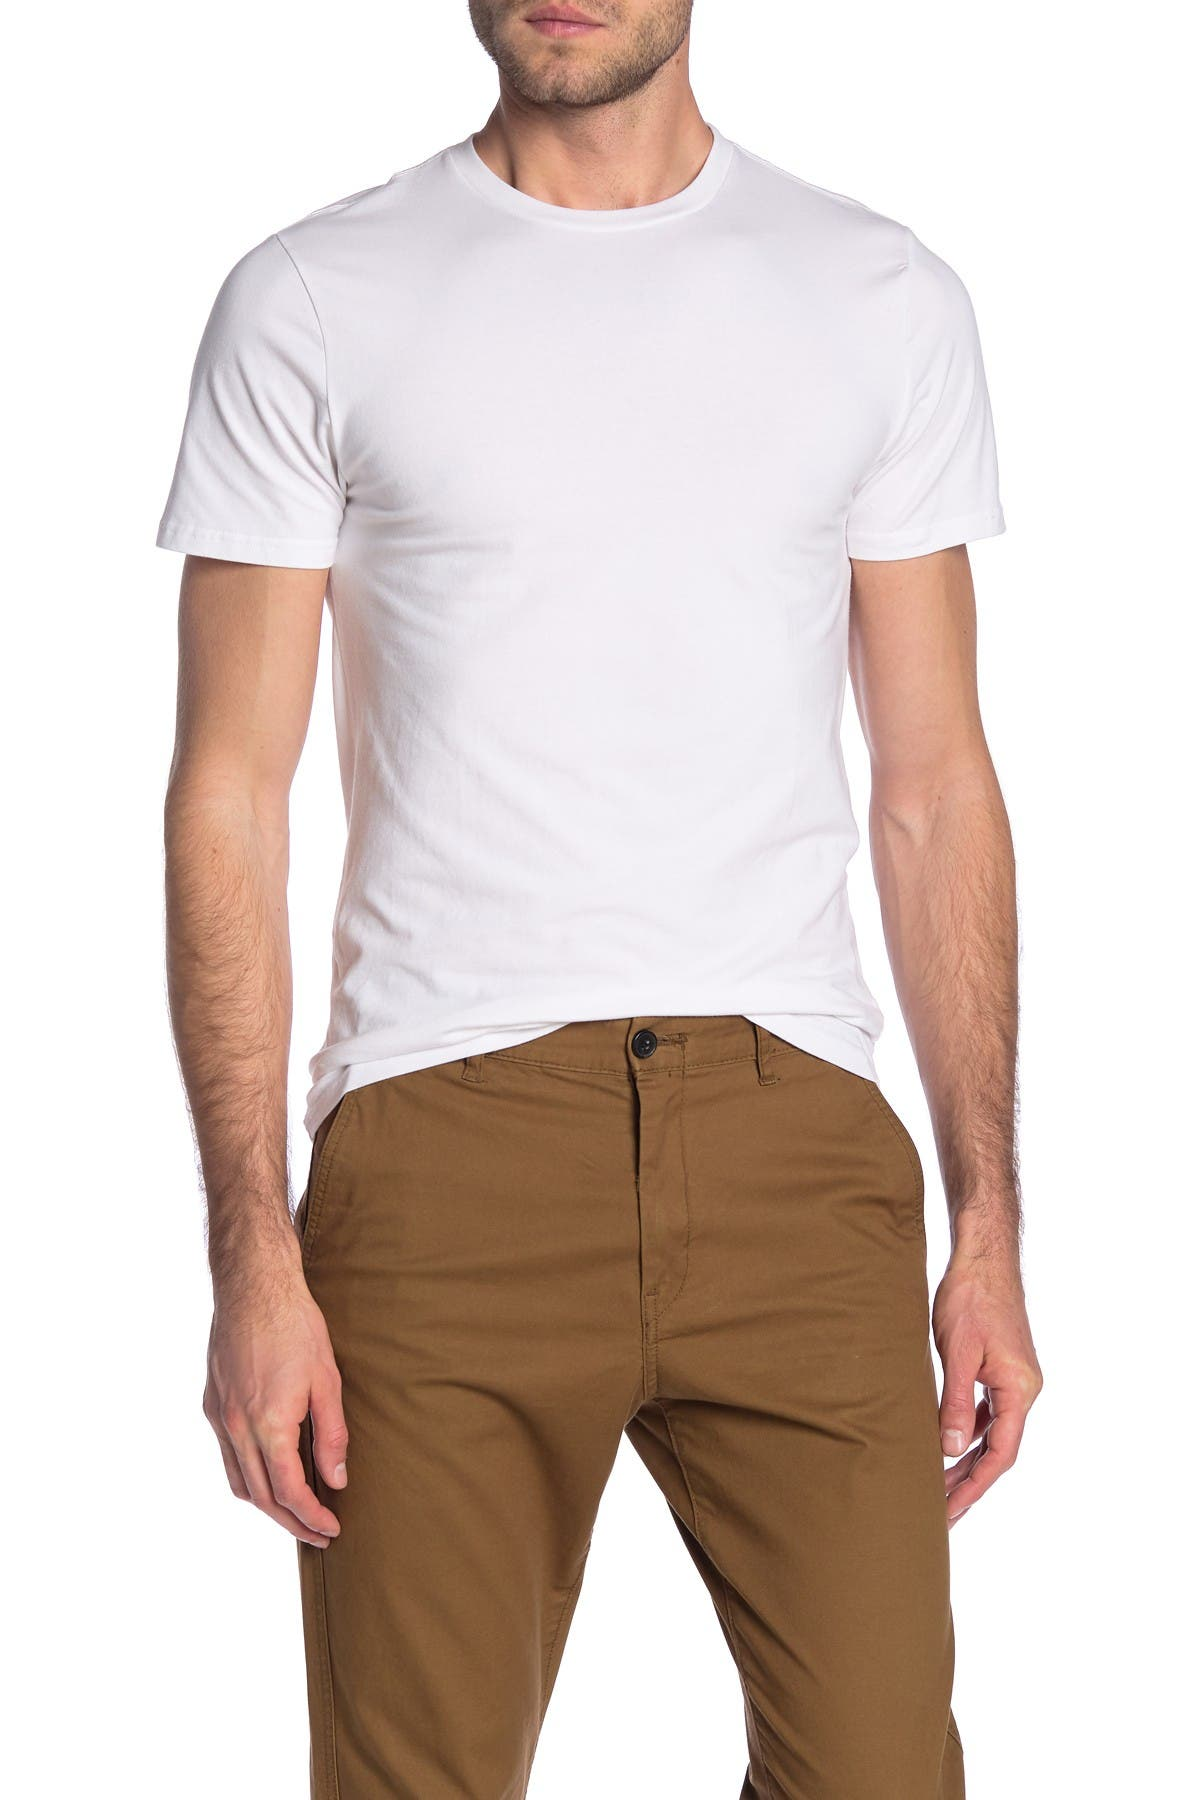 Nordstrom Rack Stretch Cotton Crew Neck T-Shirt - Pack of 3 at Nordstrom Rack